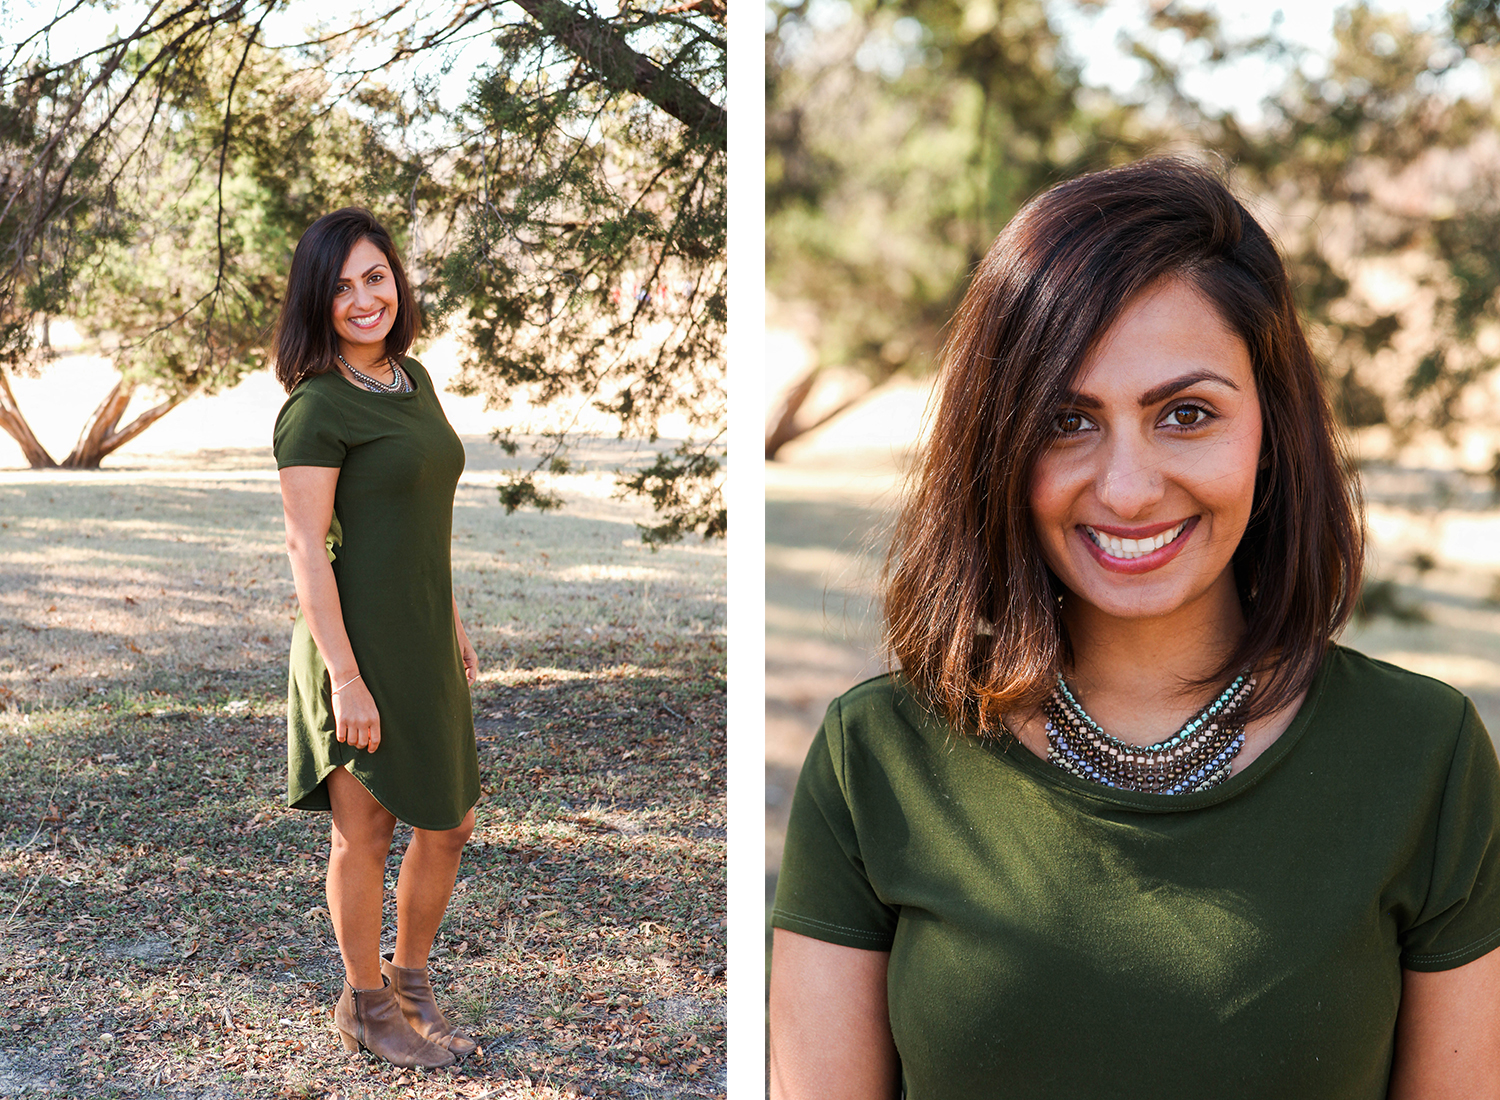 PROFESSIONAL BIO— - Dixya Bhattarai, MS, RD, LD, is a Fort Worth-based Registered Dietitian & Food and Nutrition Expert. Dixya graduated with a major in dietetics and a minor in Biology from Idaho State University in 2010 before she received a Master of Science in Nutrition in 2016.She created Food, Pleasure, and Health in 2011 to share easy, wholesome recipes, and provide a creative health and wellness space to help others enjoy healthy lives in an approachable way.Dixya has 6+ years of experience in acute care clinical dietetics and food service management. She also collaborates with corporate wellness companies through nutrition education, cooking demonstration, and workshops.